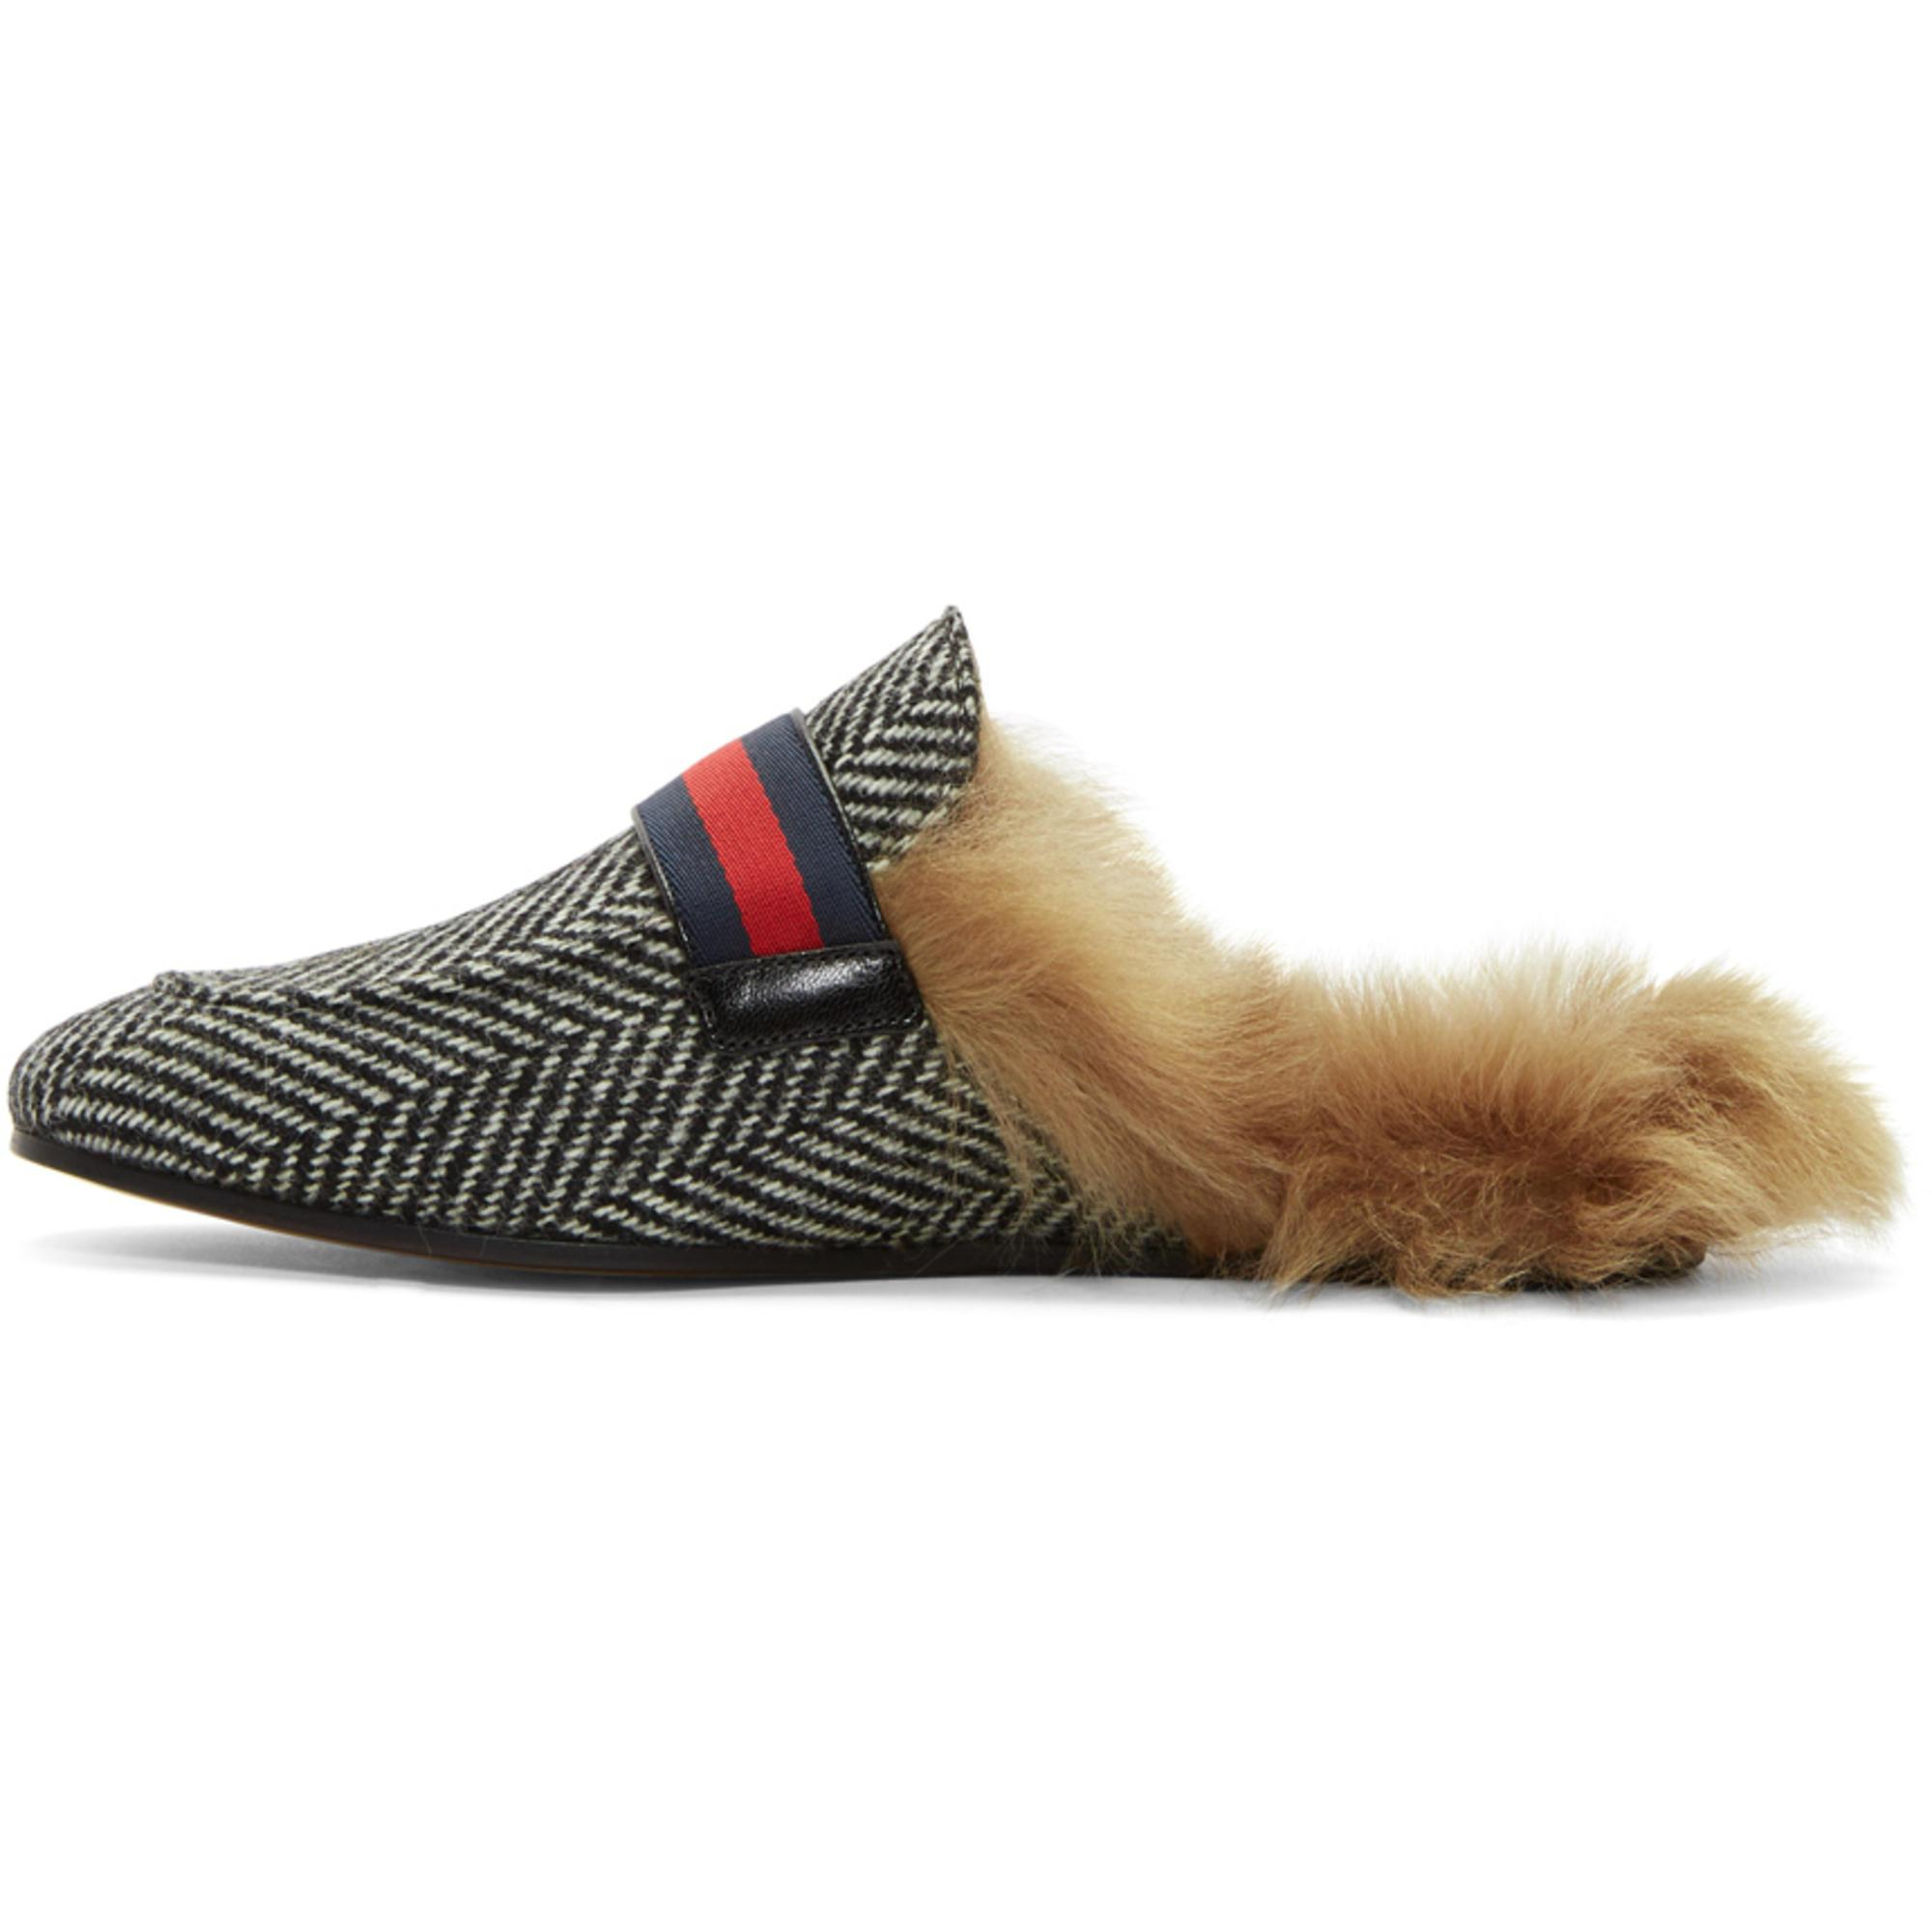 Black and White Herringbone Wool-Lined Princetown Slip-On Loafers Gucci 4Gy8bEbhBm